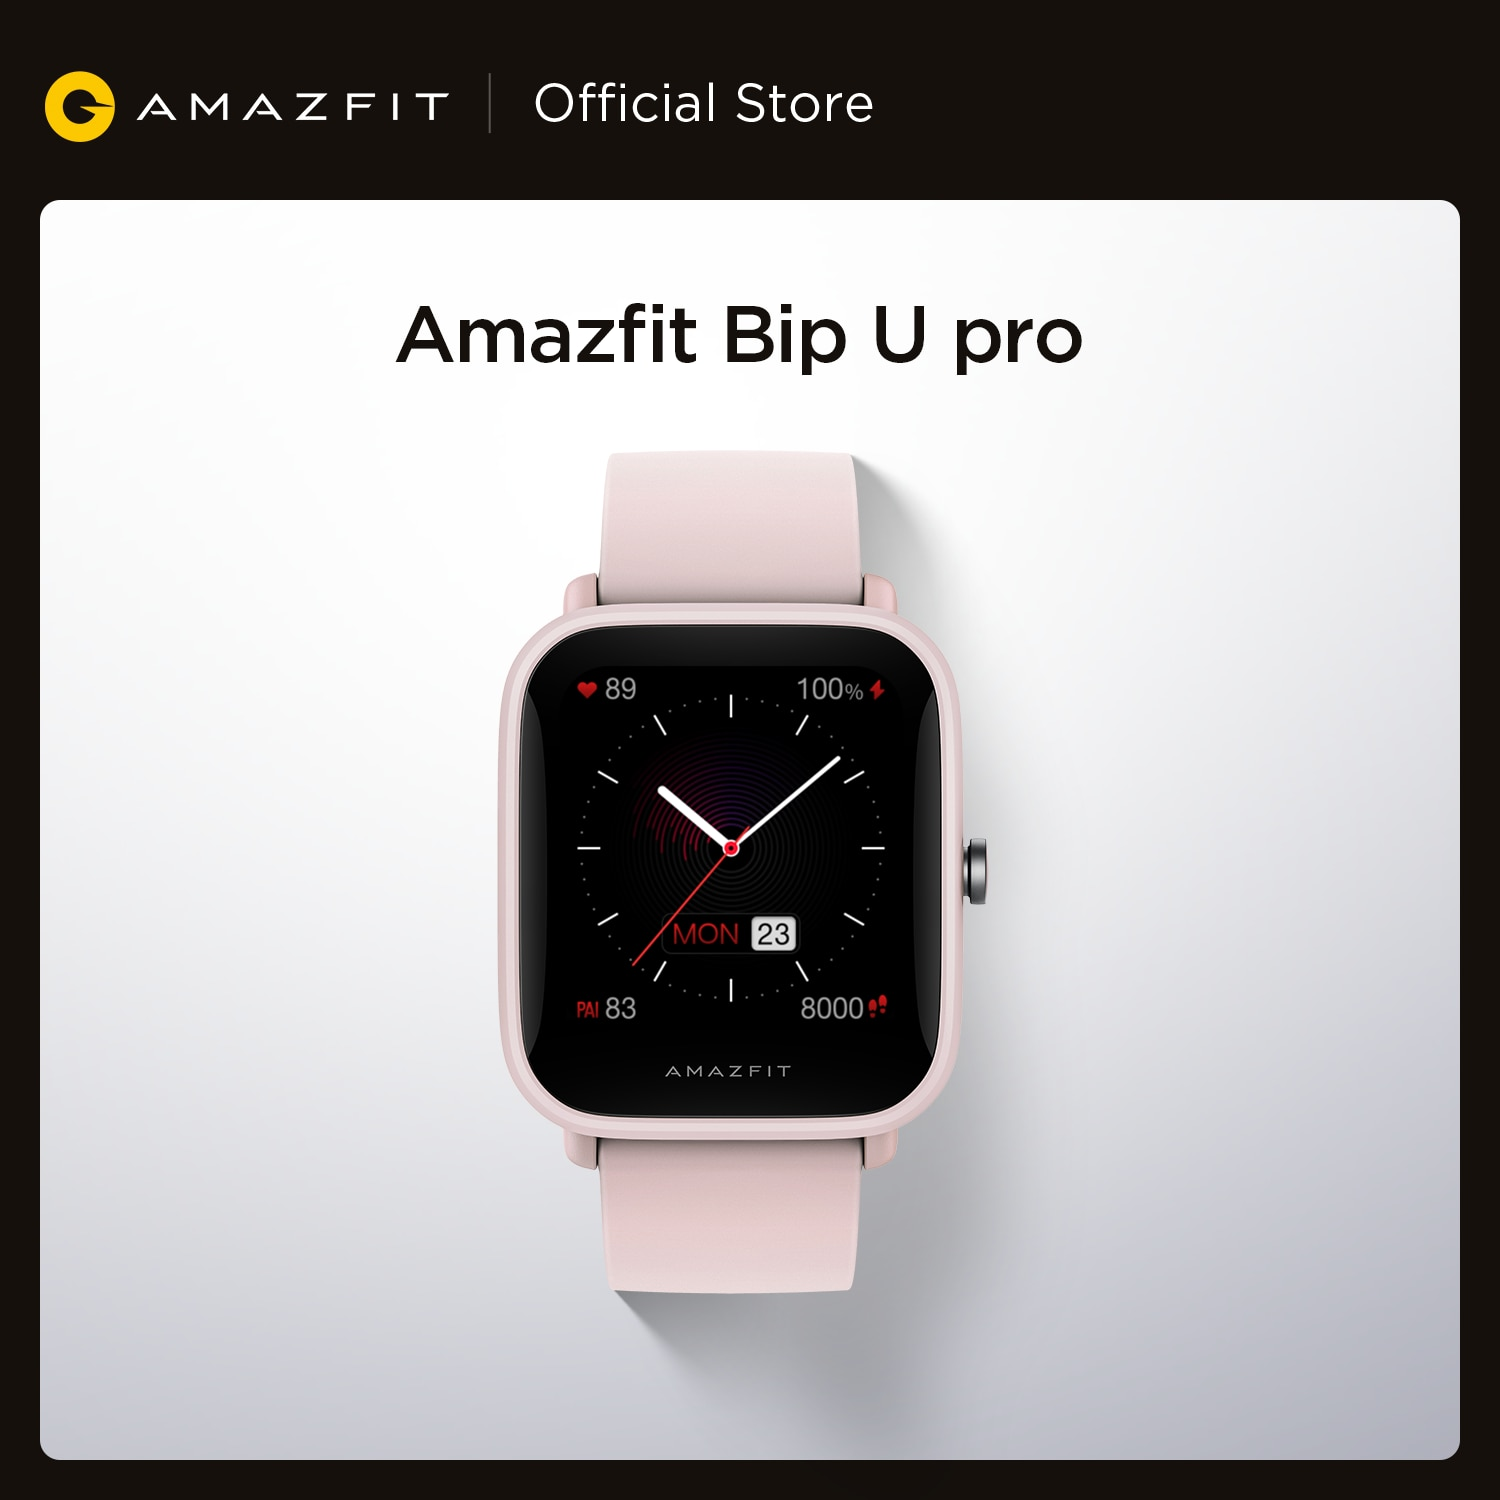 NEW 2021 Amazfit Bip U Pro GPS Smartwatch Color Screen 31g 5ATM Water-resistance 60+ Sports Mode Smart Watch for Android IOS